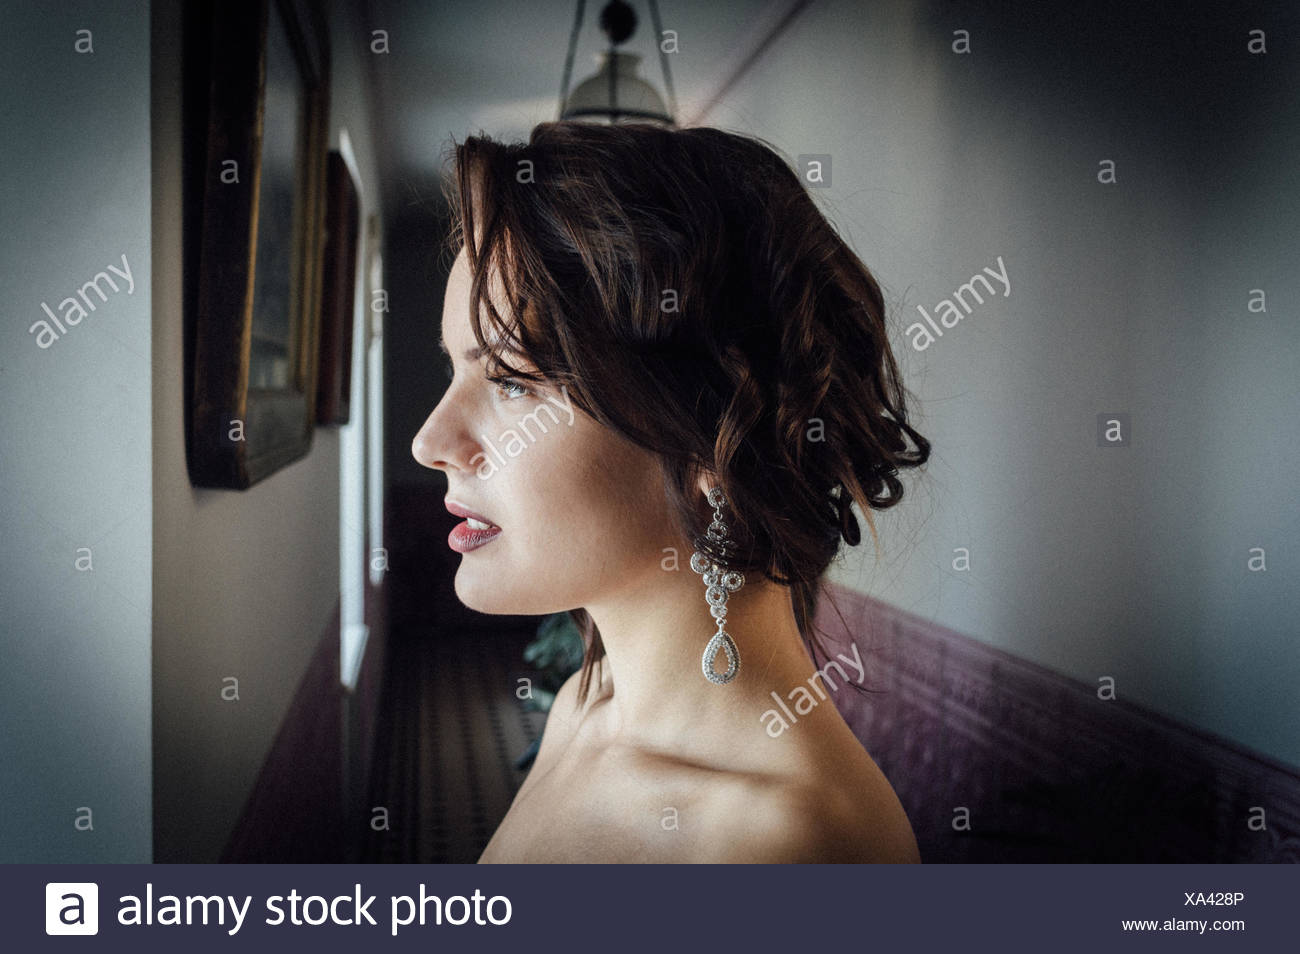 Thoughtful profile pictures